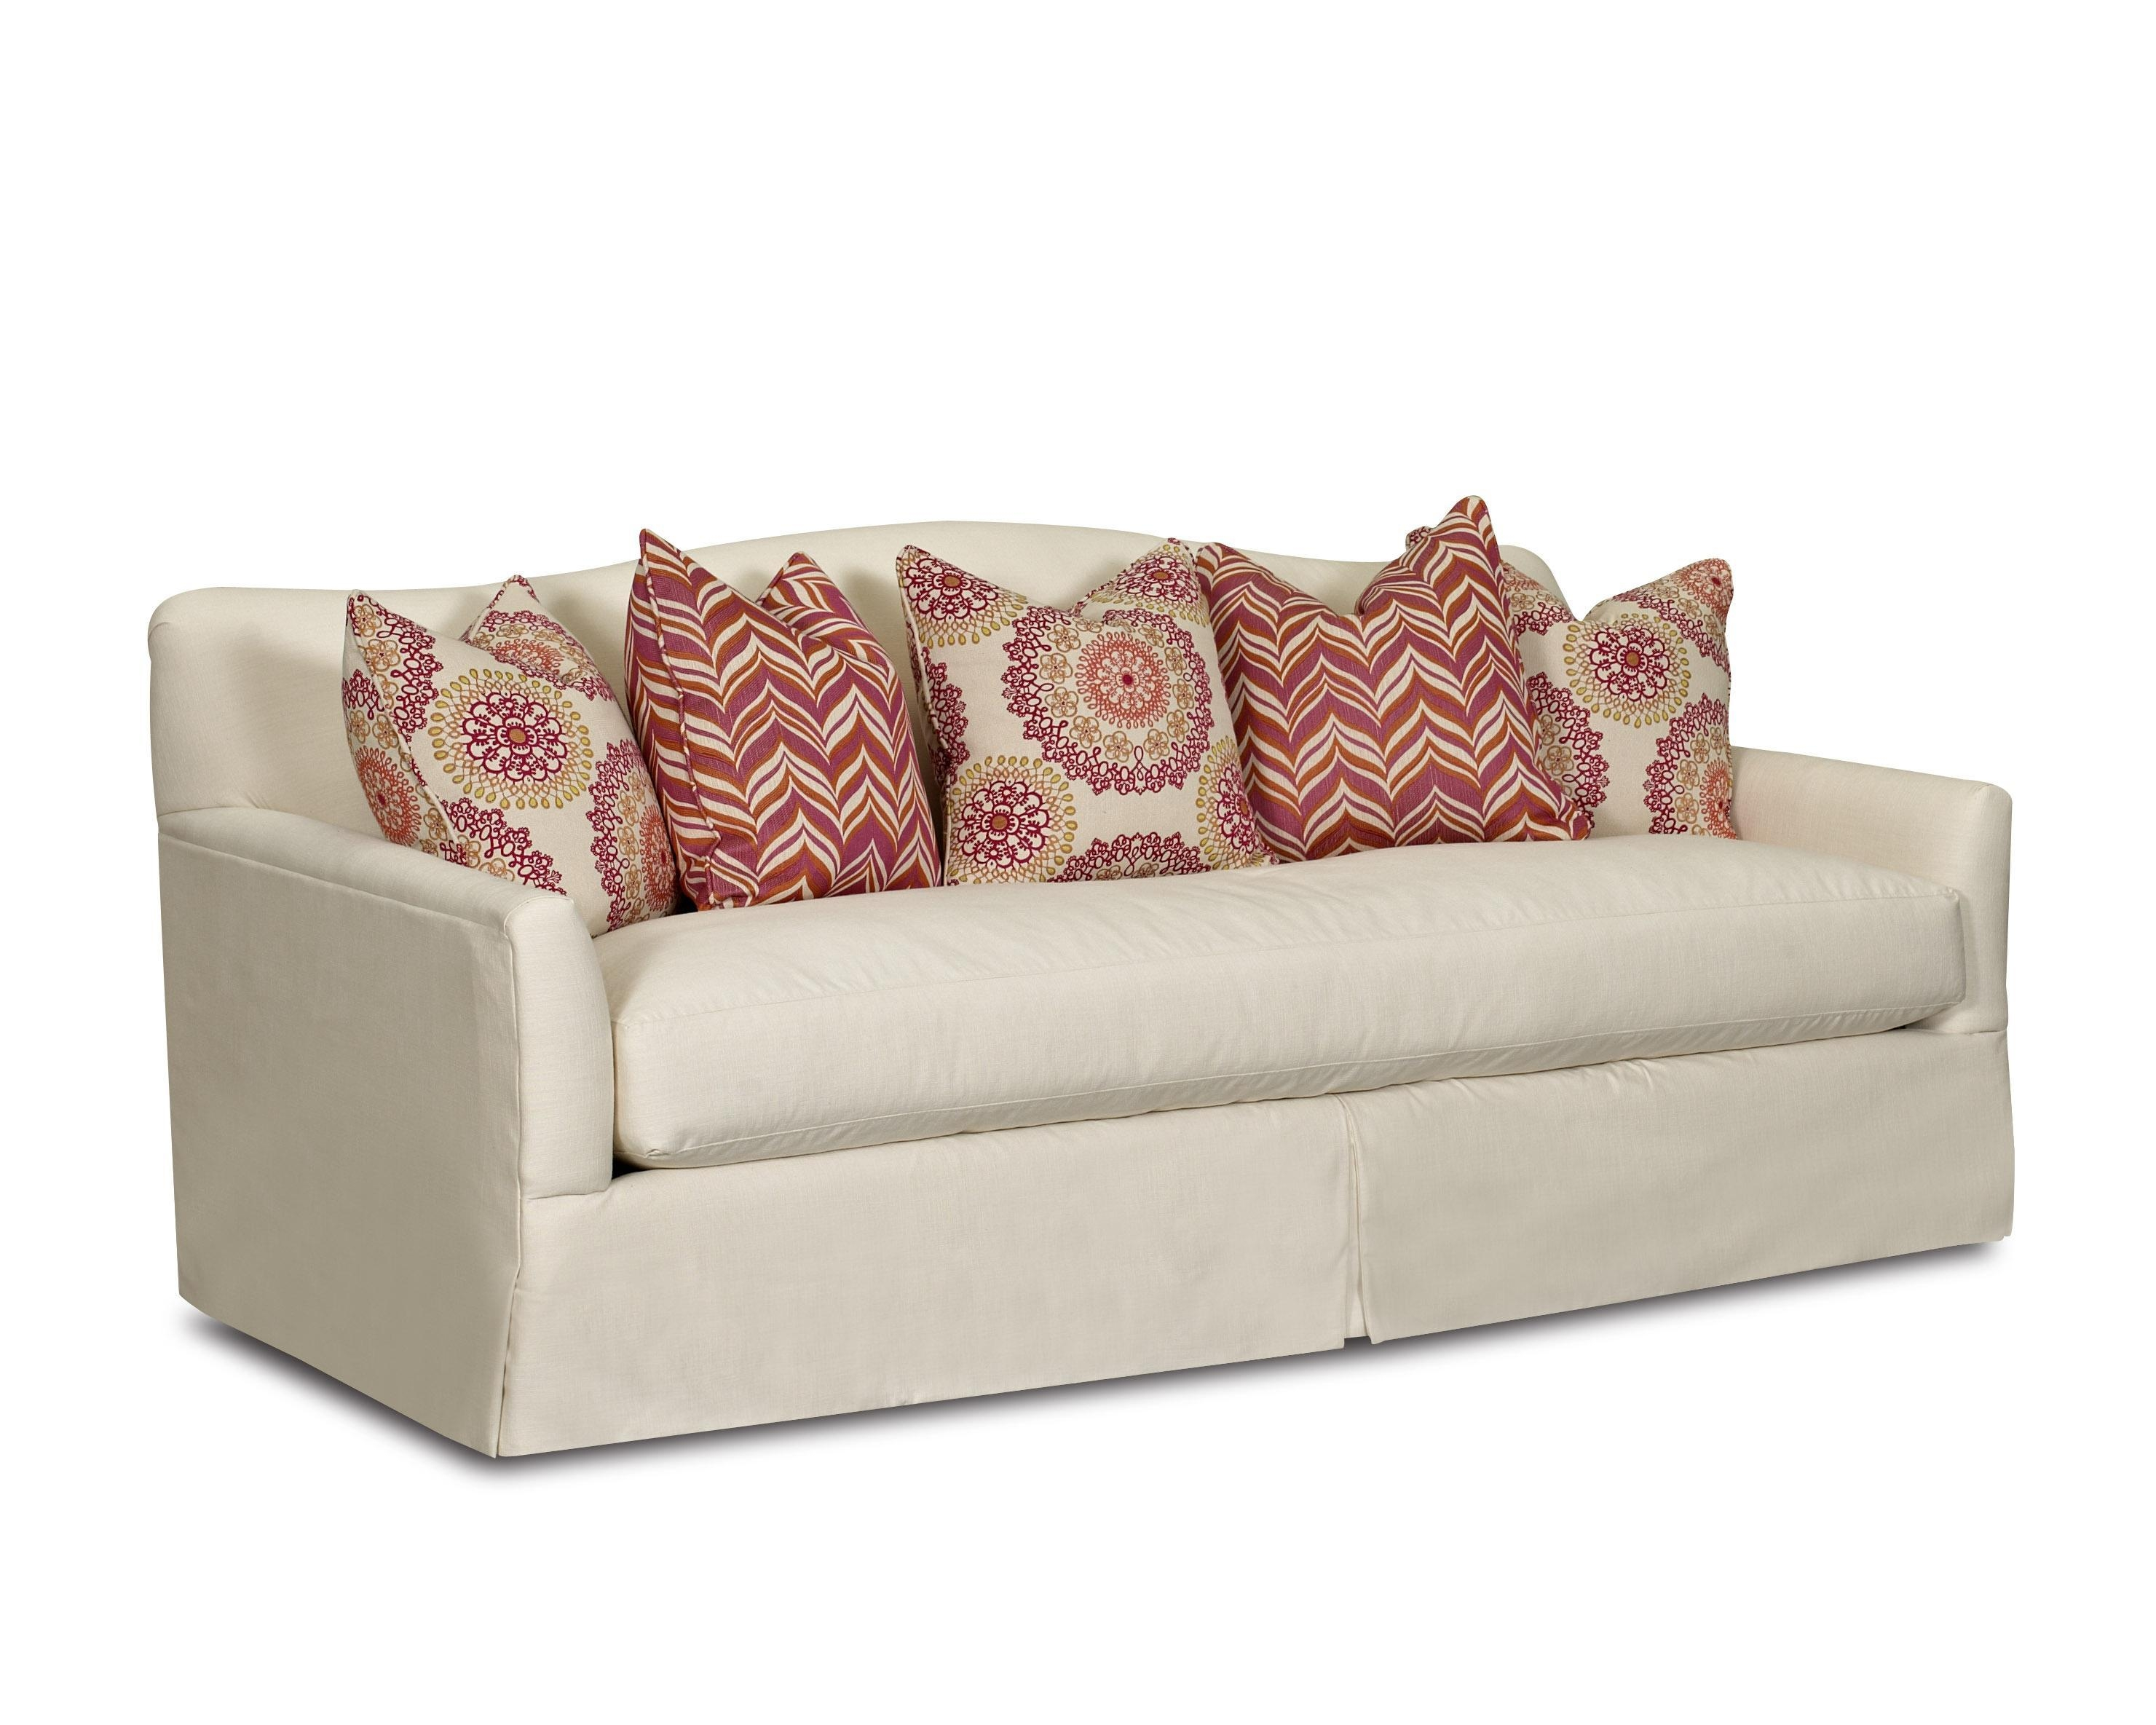 Transitional Stationary Sofa With Bench Seat Cushion, Camel Back Intended For Bench Cushion Sofas (Image 20 of 20)